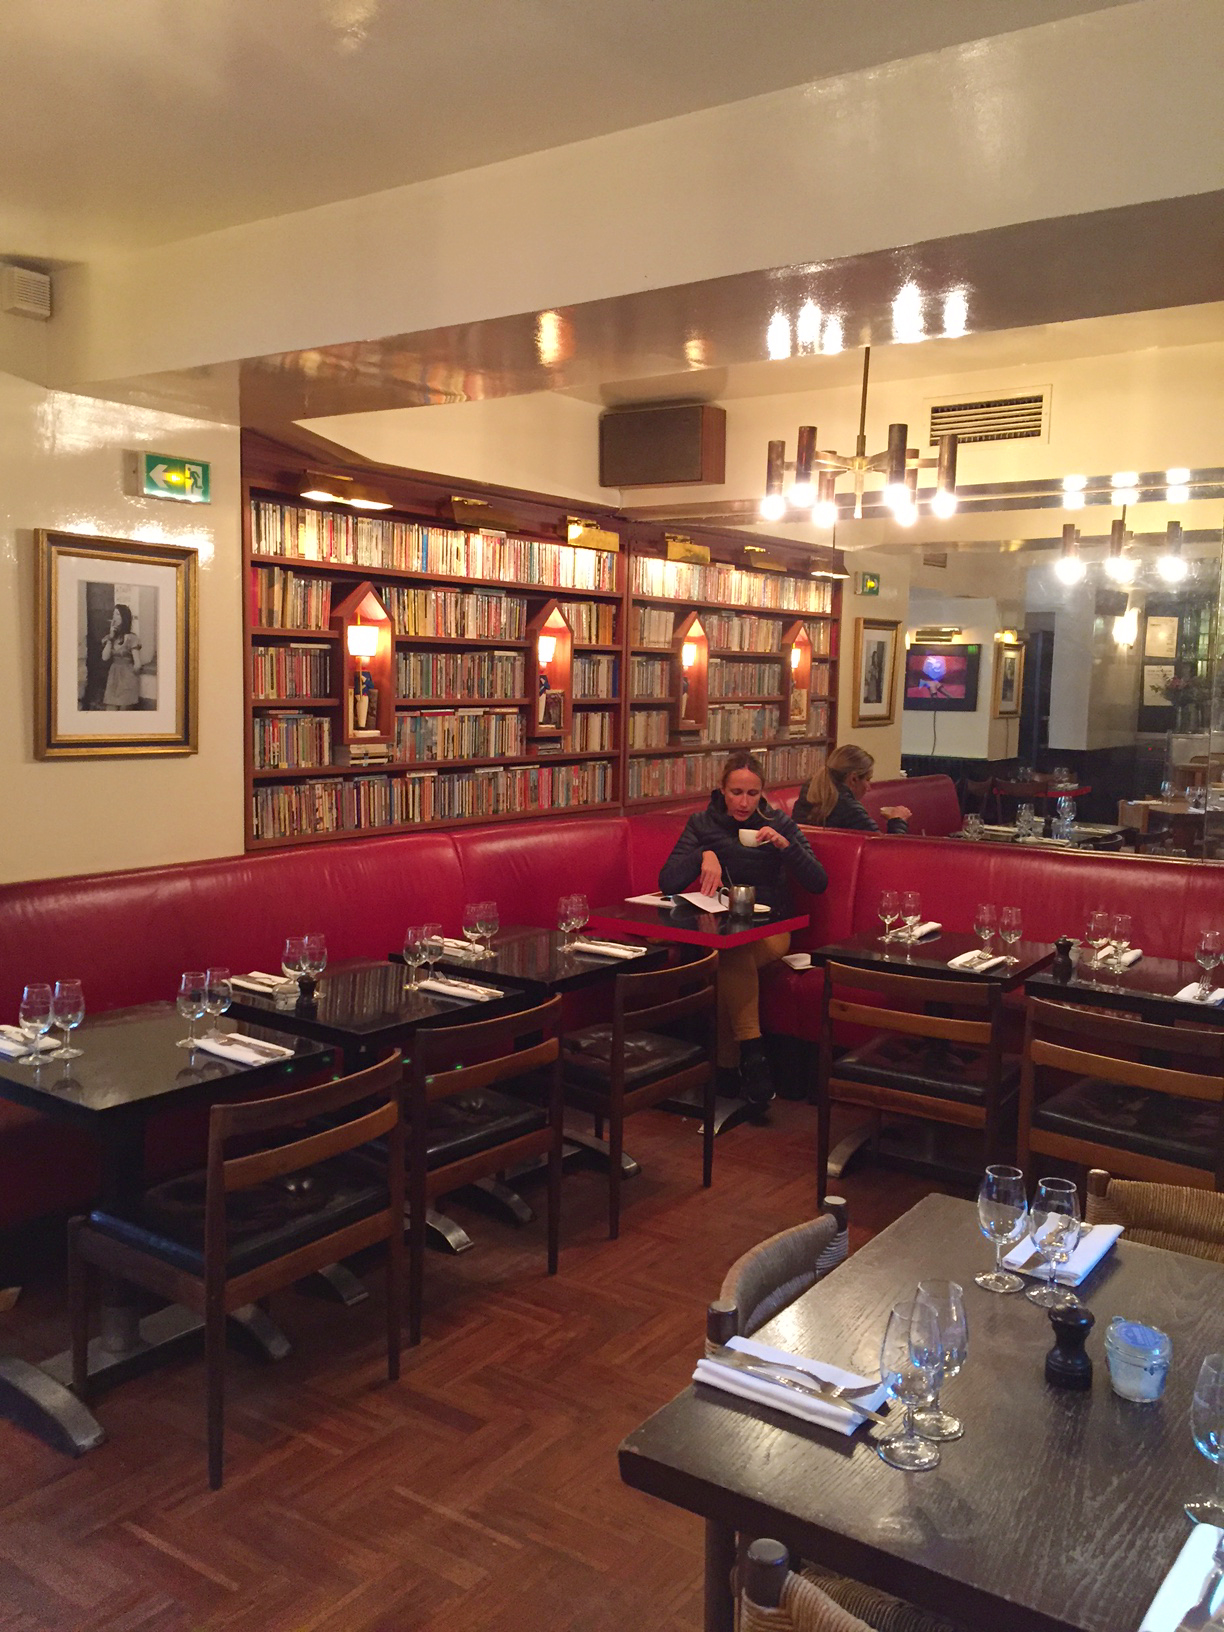 The main dining room is cosy and decorated with books and vintage finds.